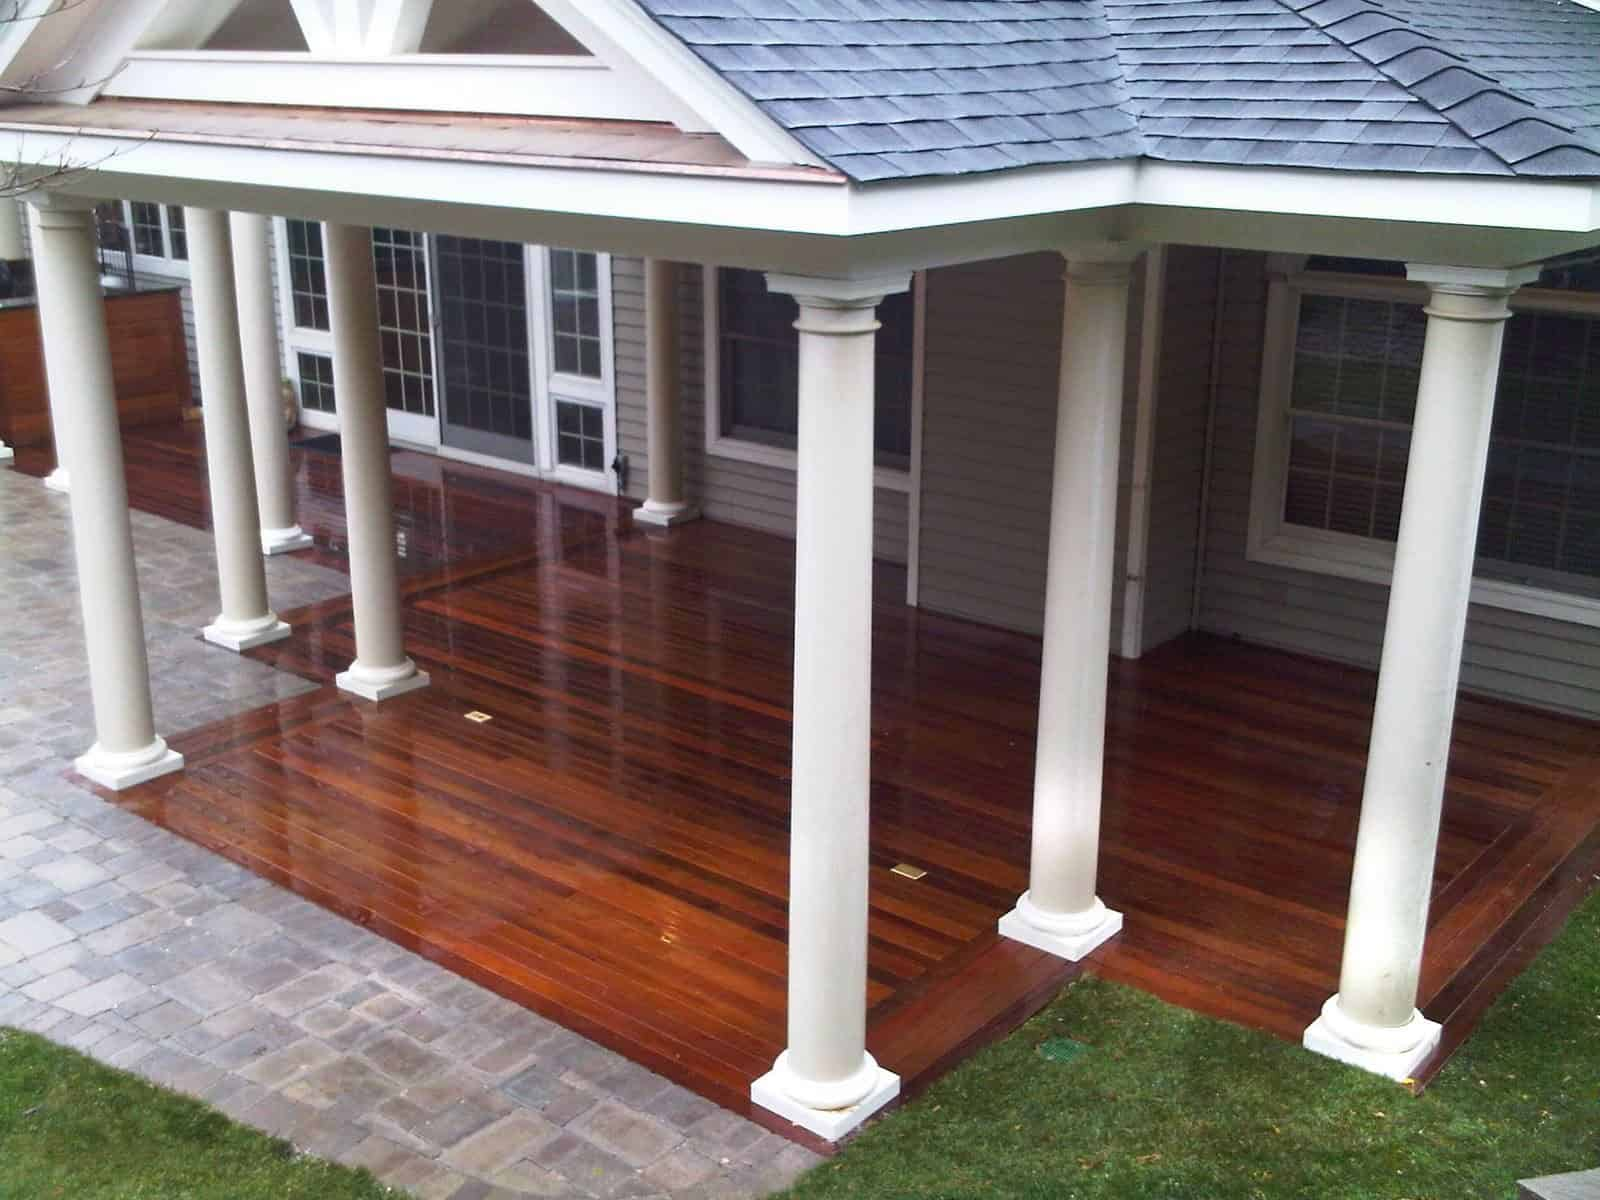 20' x 30' IPE deck - seal coated - Roslyn, Long Island NY